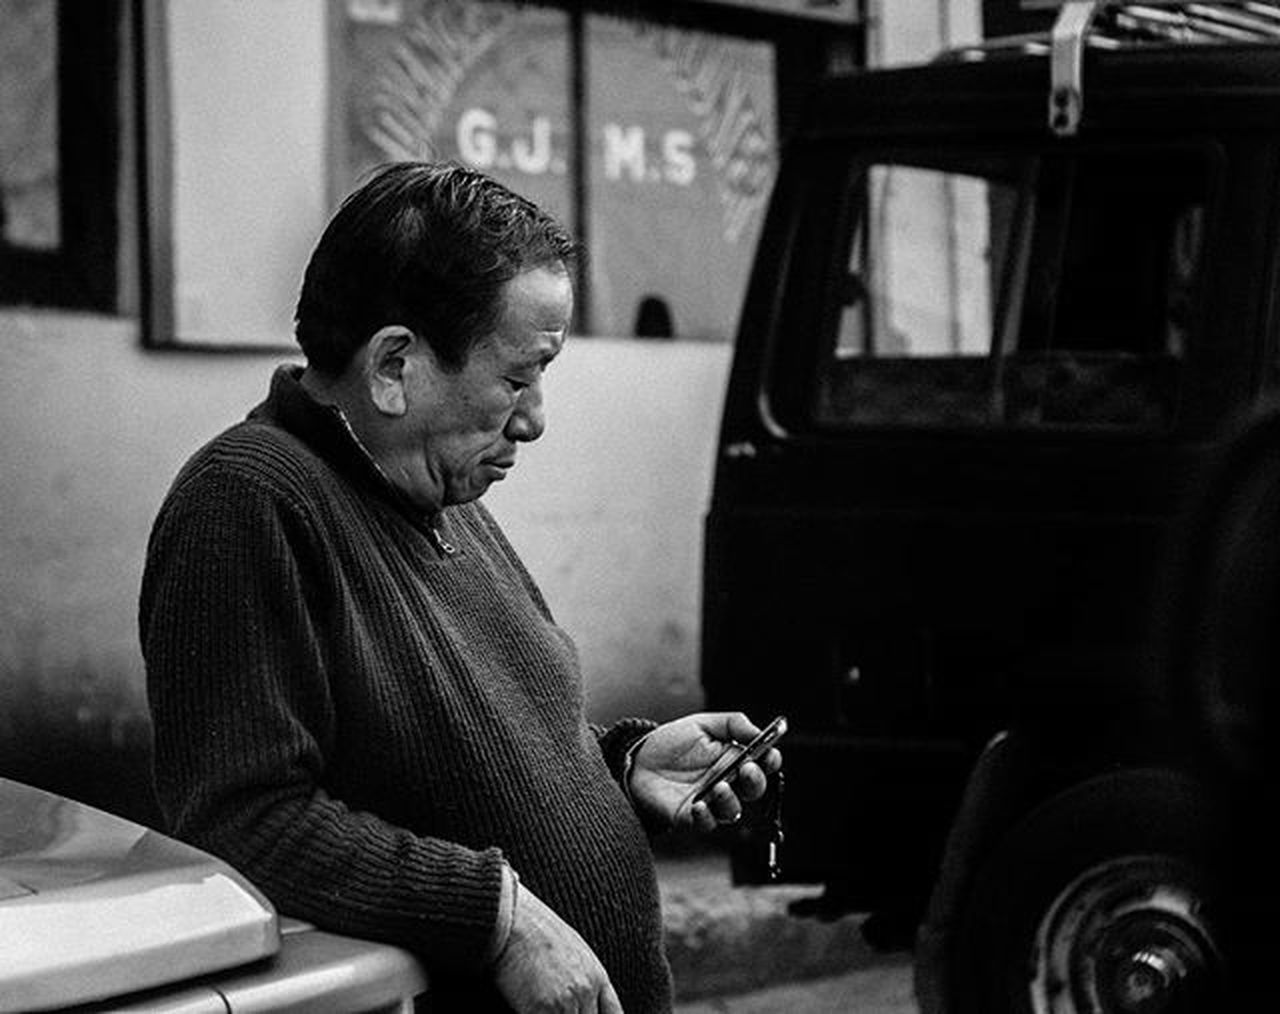 A local cab driver checking his cellphone at Cab depot, Darjeeling. . . . . Darjeeling Blackandwhite People Candid Streetportrait Portrait Jj_streetphotography Moodygrams Highcontrast Foto_blackwhite Amateurs_bnw Bnw_planet Bnw_rose Bnw Travel Travelingram Natgeotravel Lonelyplanetindia Ig_india Ig_bengals OnlyinIndia IndiaLove Natgeo Betterphotography Onlyinbengal indiaphotoproject _oye _soi indiastreet